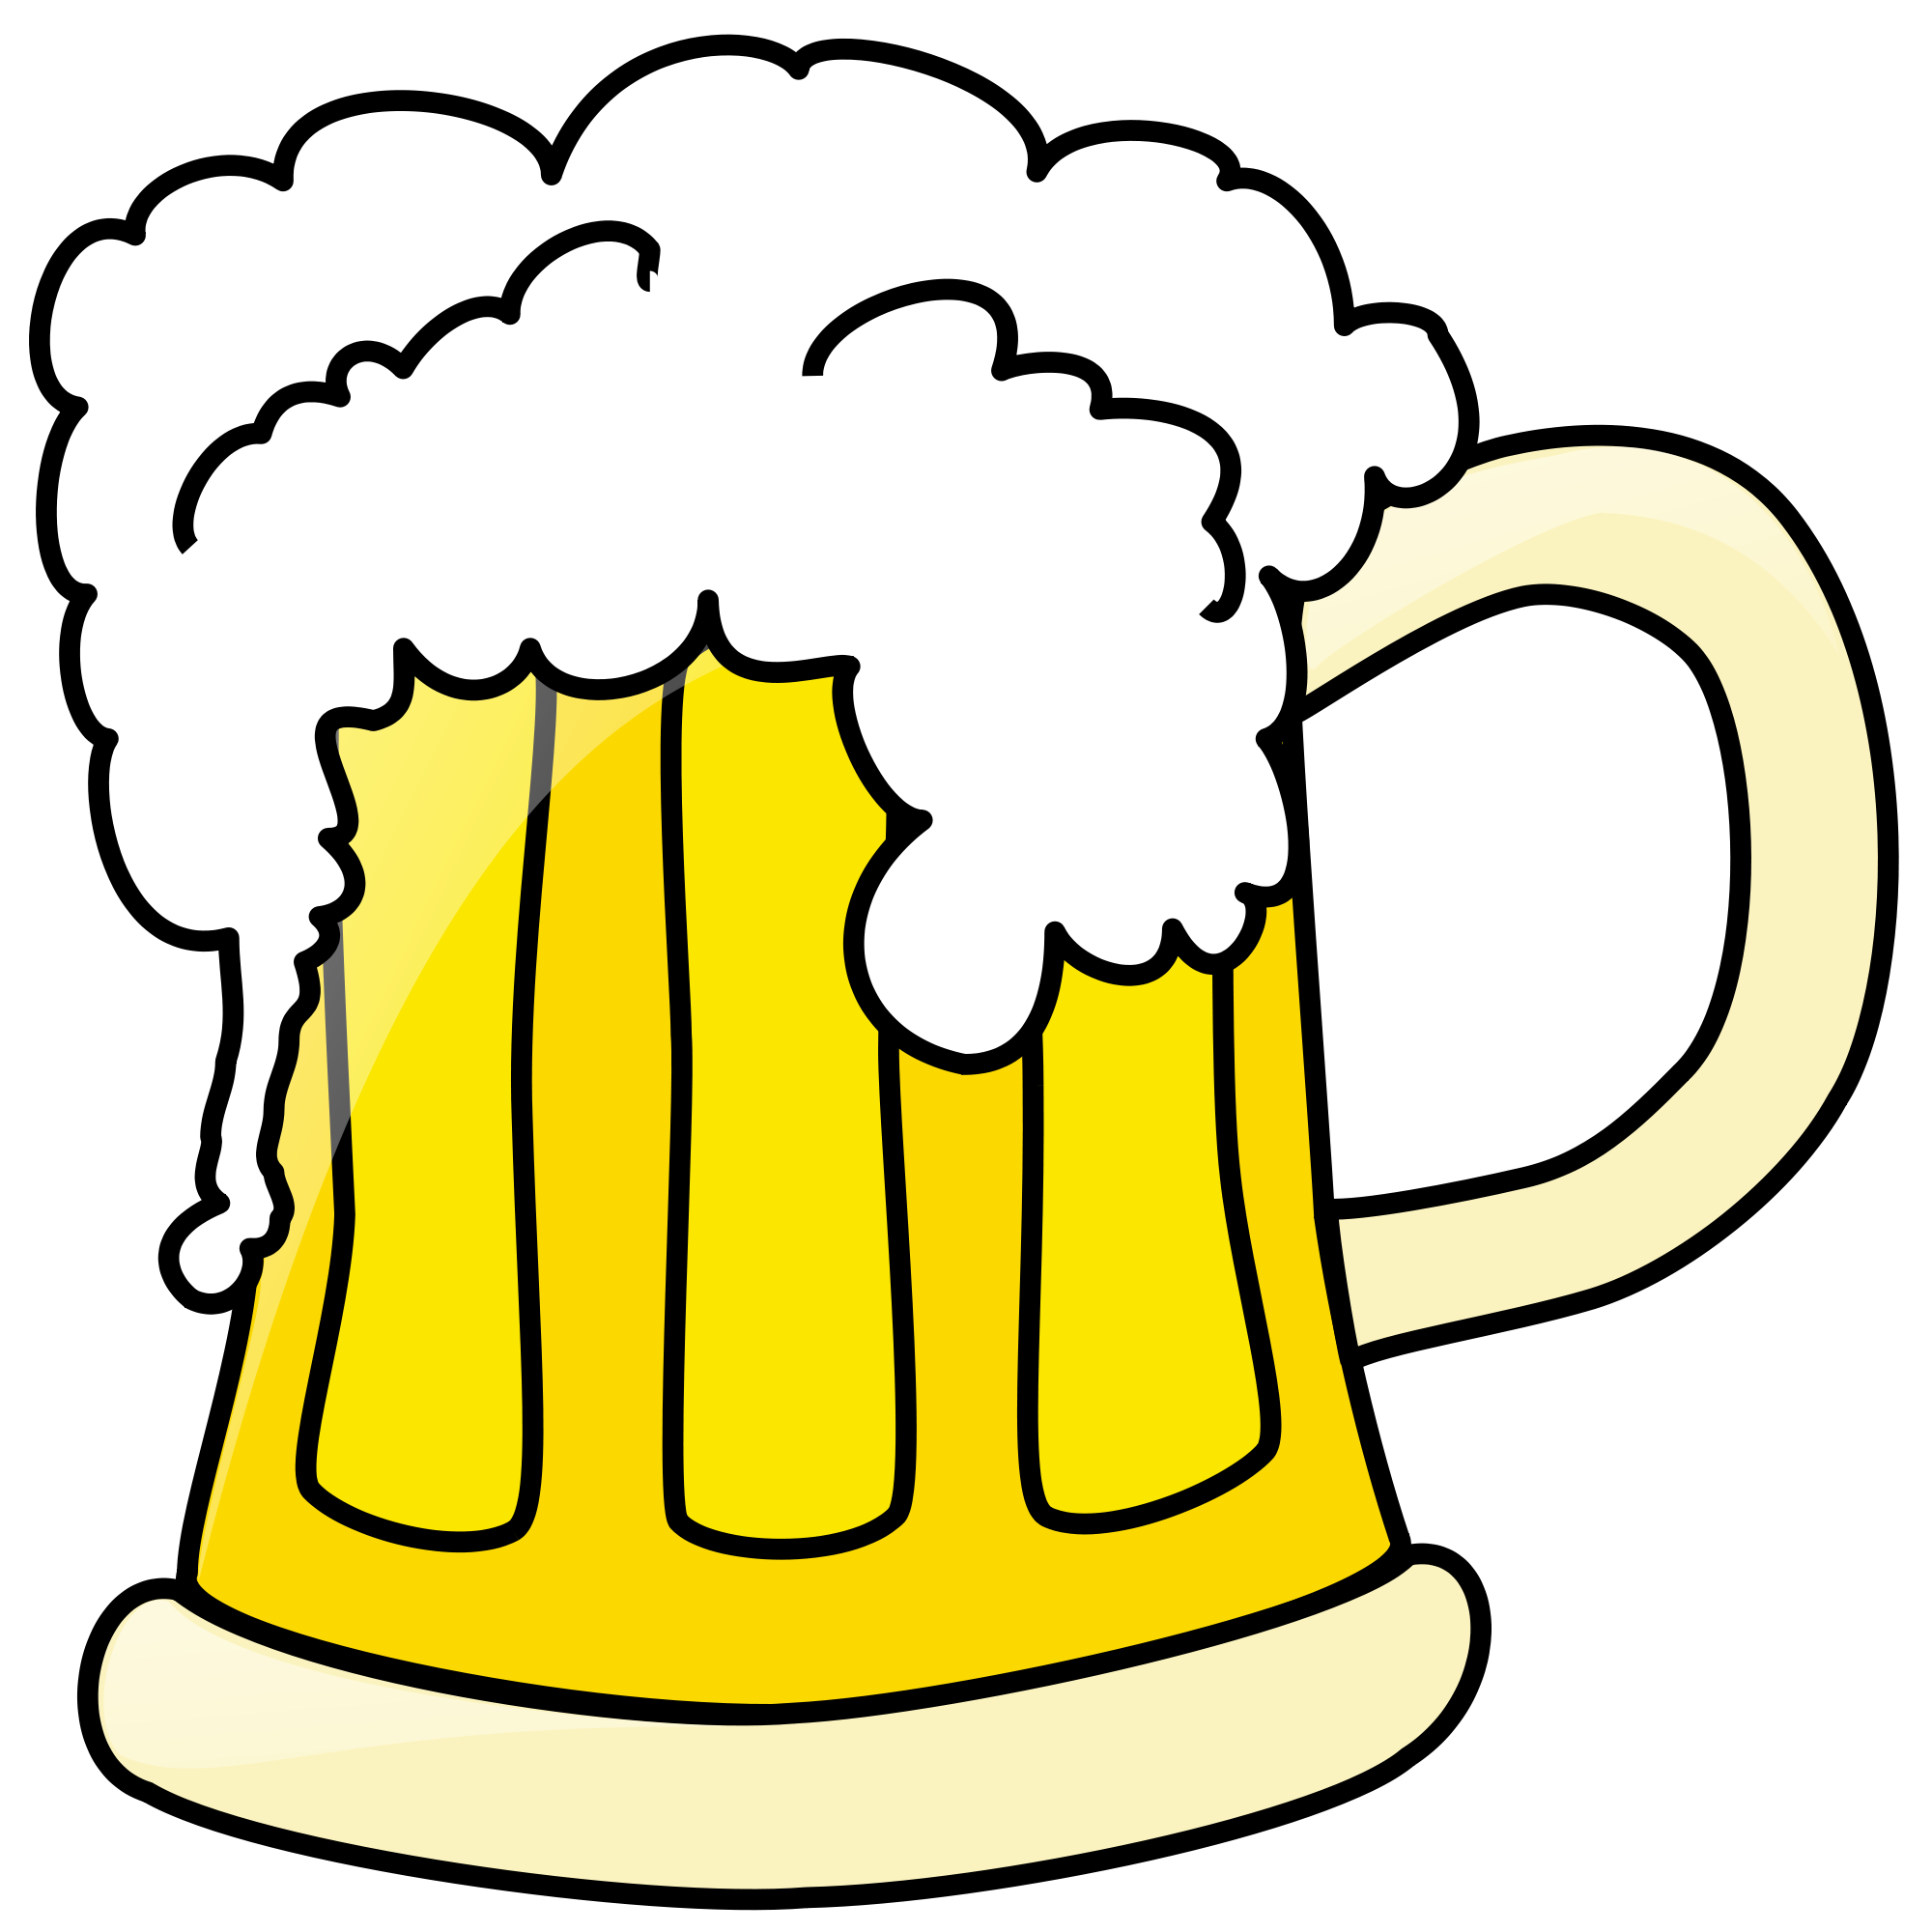 2000x2000 Images For Gt Beer Can Drawing Music, Parties And Love